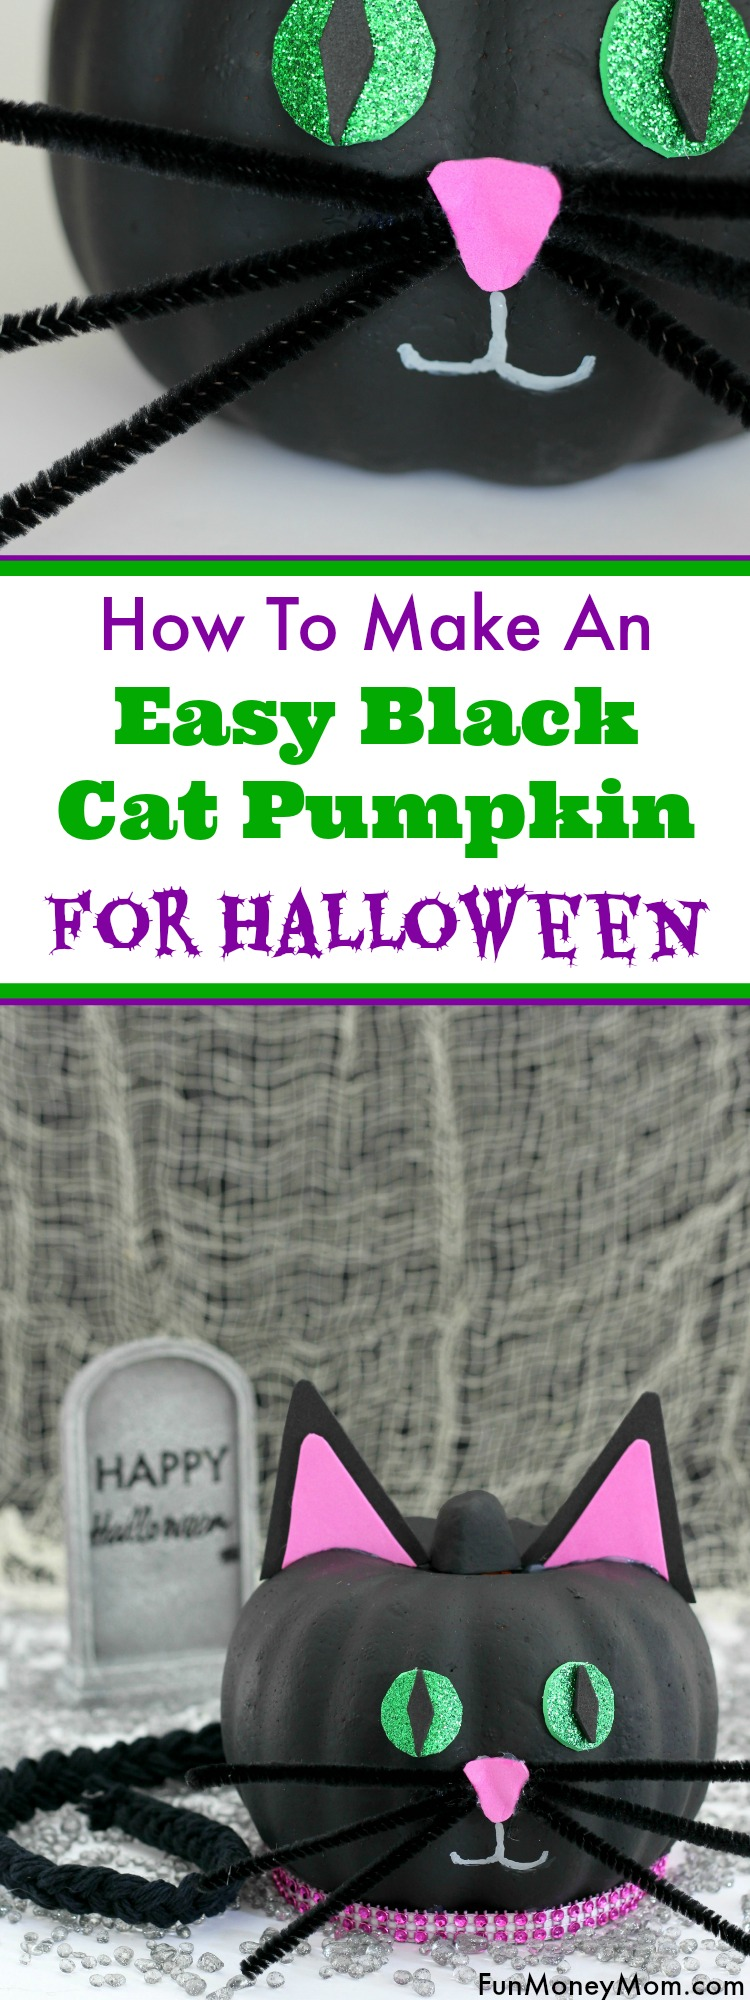 Love making no-carve pumpkins? Have a little Halloween fun making this easy black cat pumpkin!